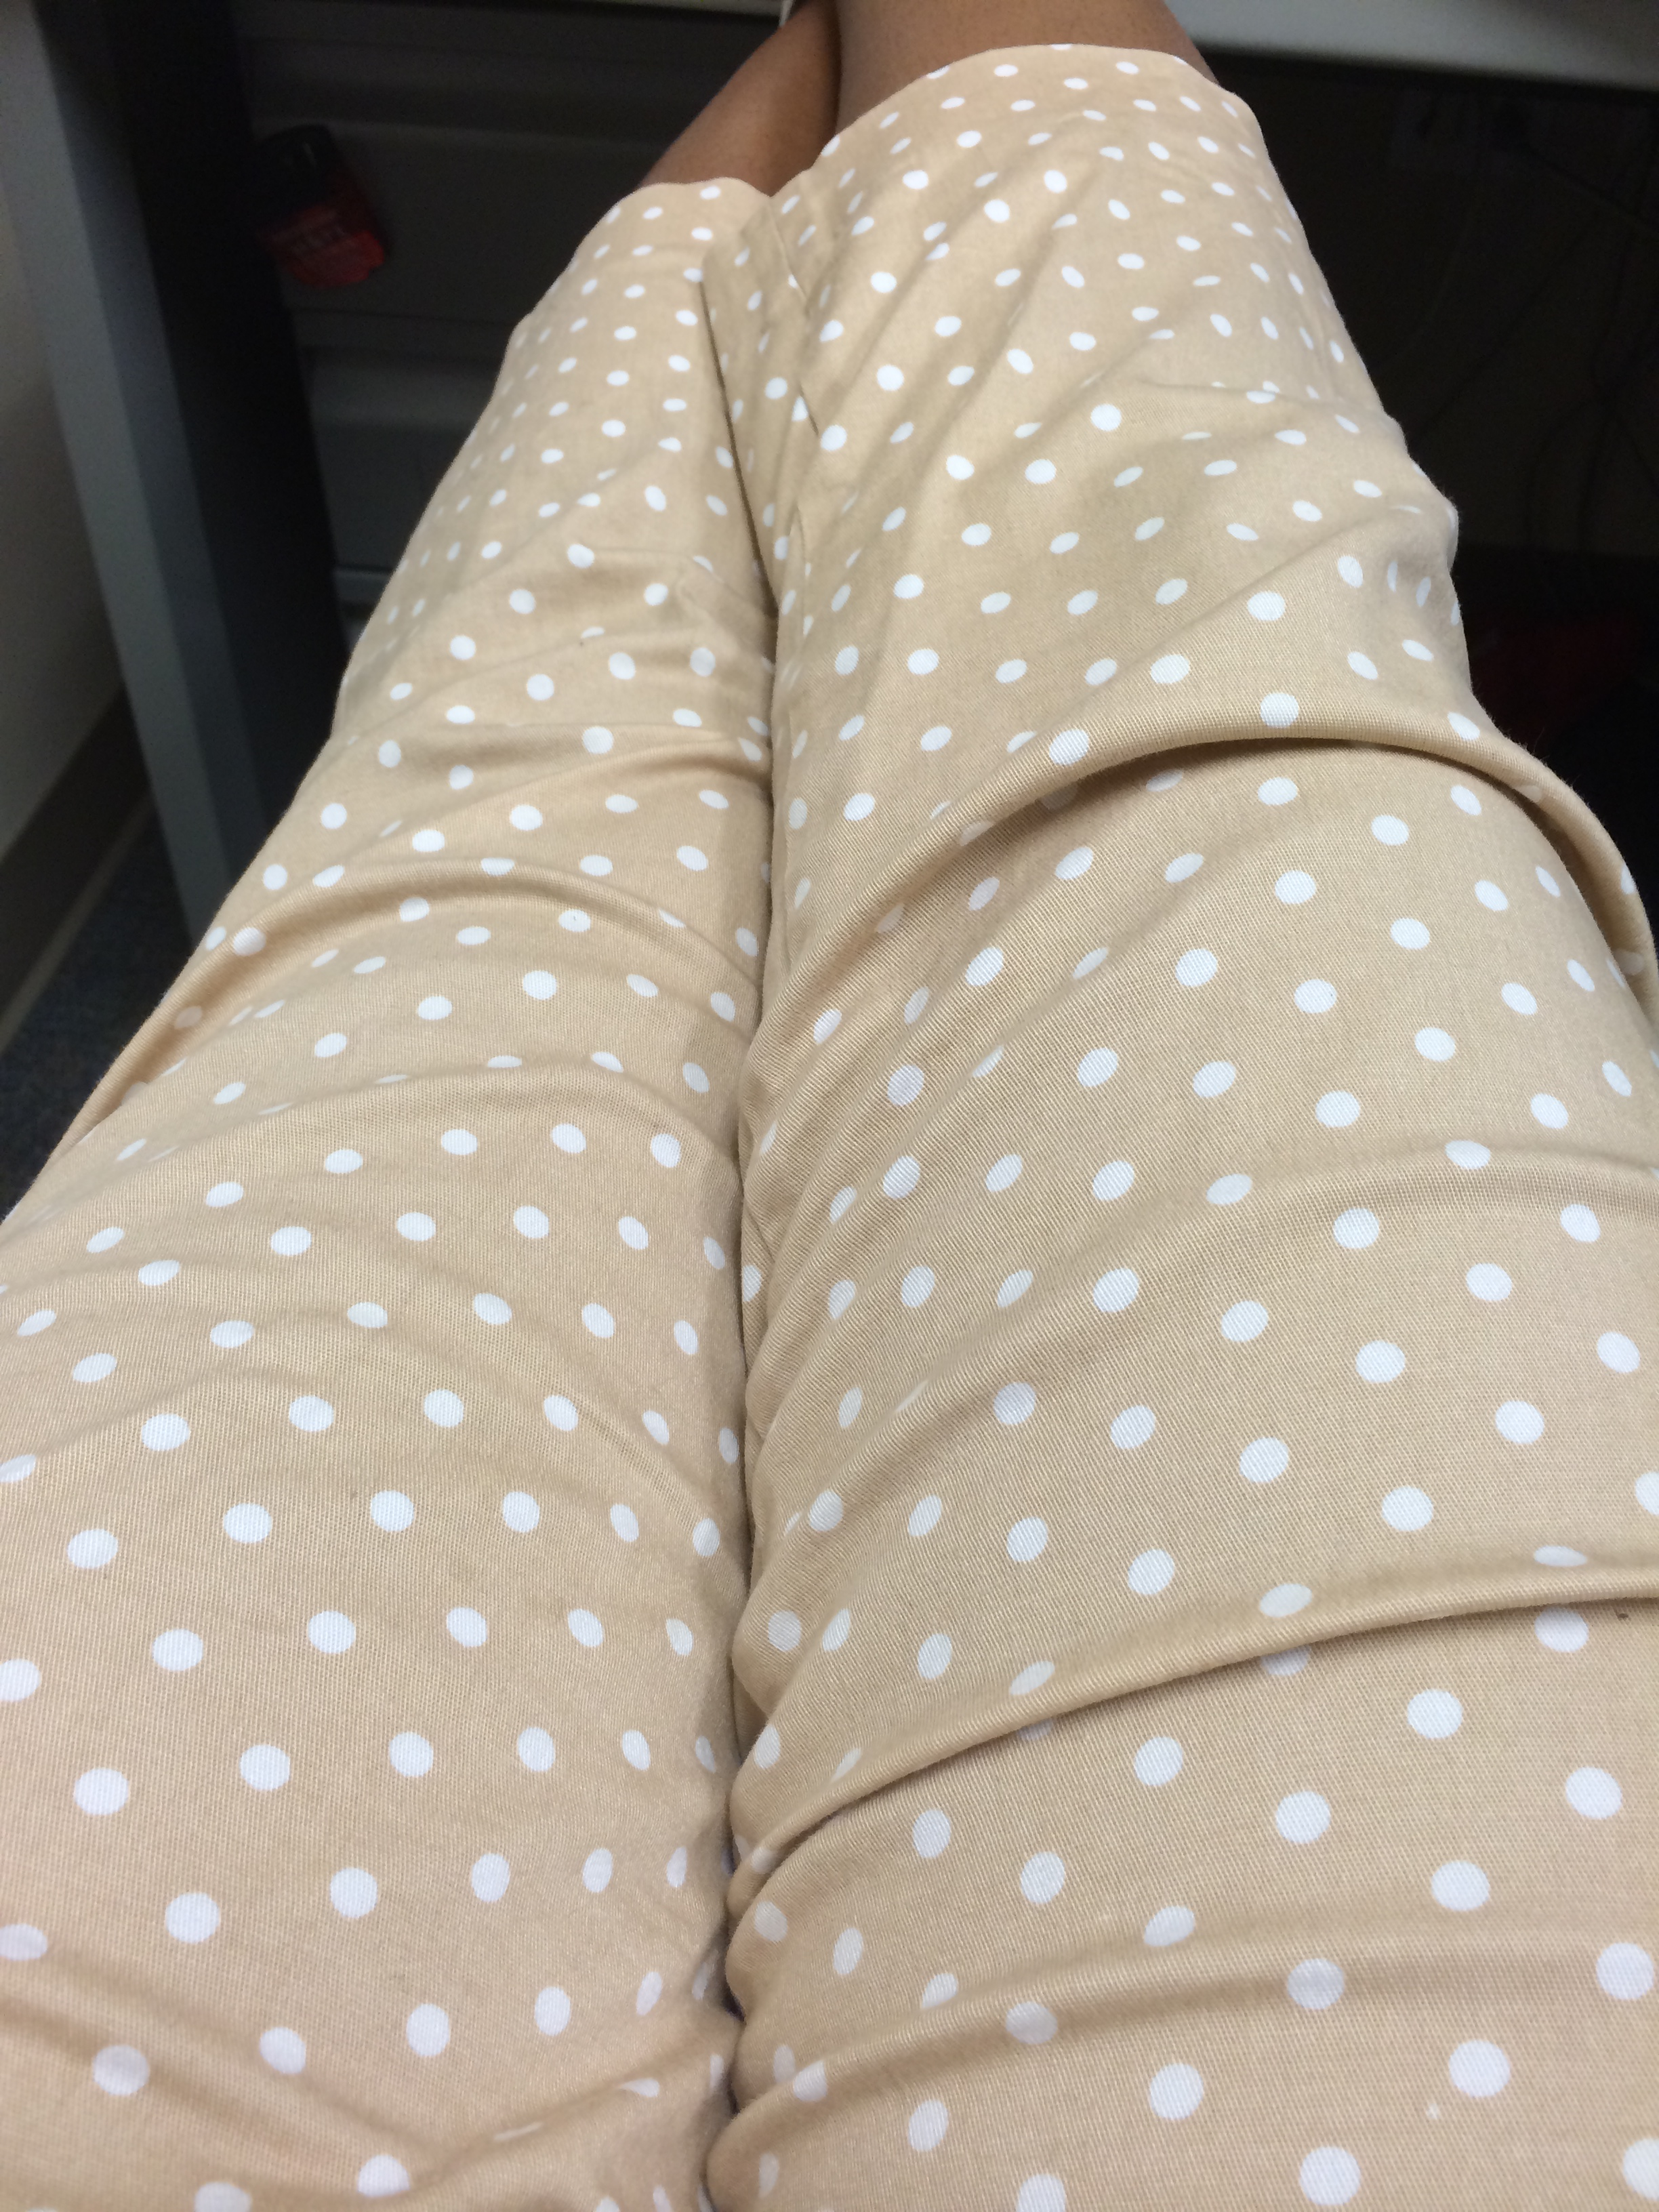 I love these polka dot pants.